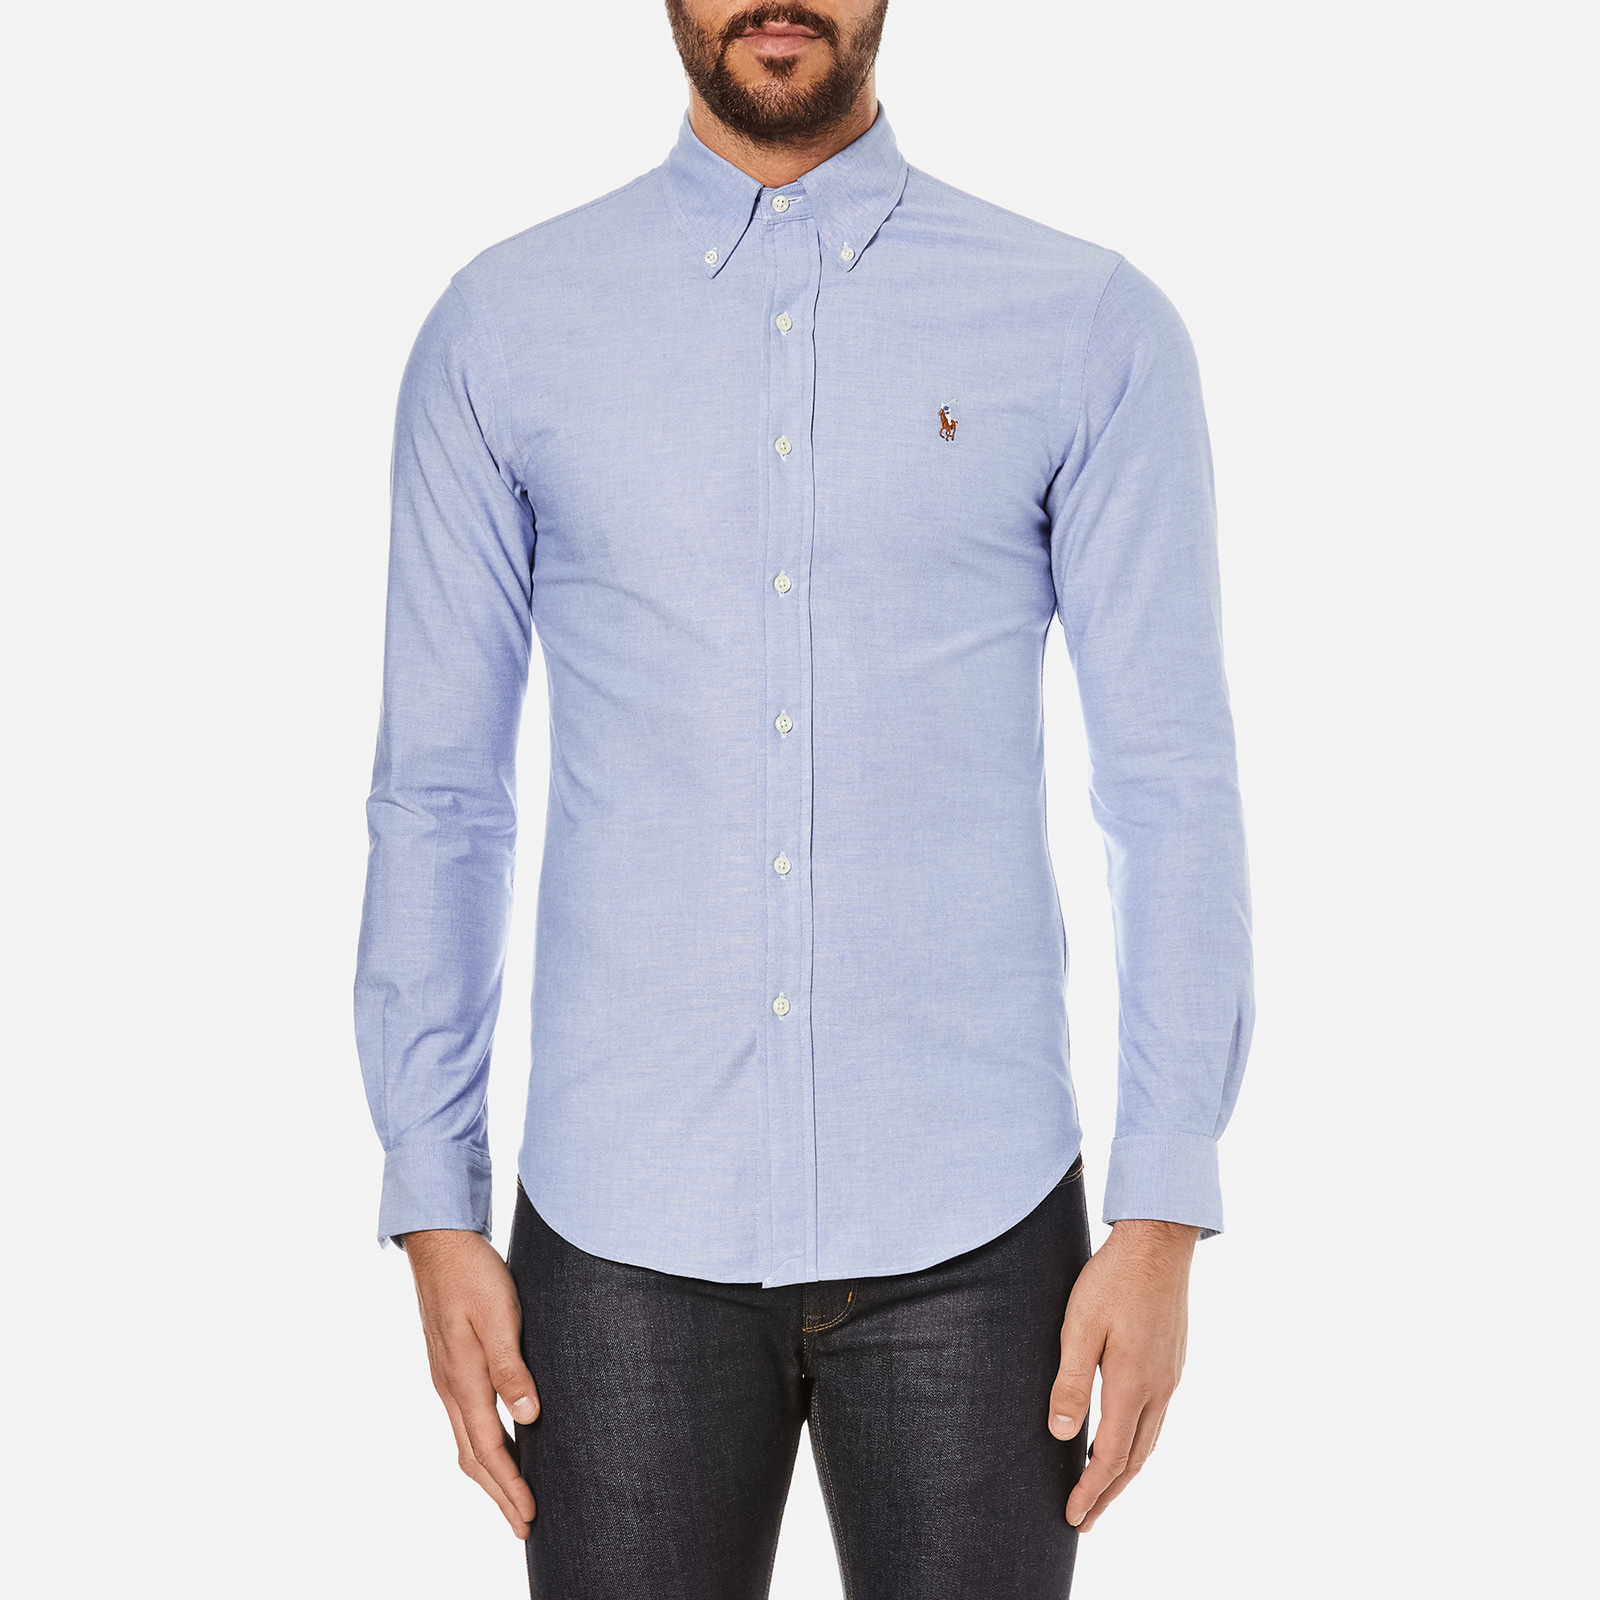 be5d20fee Polo Ralph Lauren Men s Slim Fit Button Down Stretch Oxford Shirt - Blue -  Free UK Delivery over £50